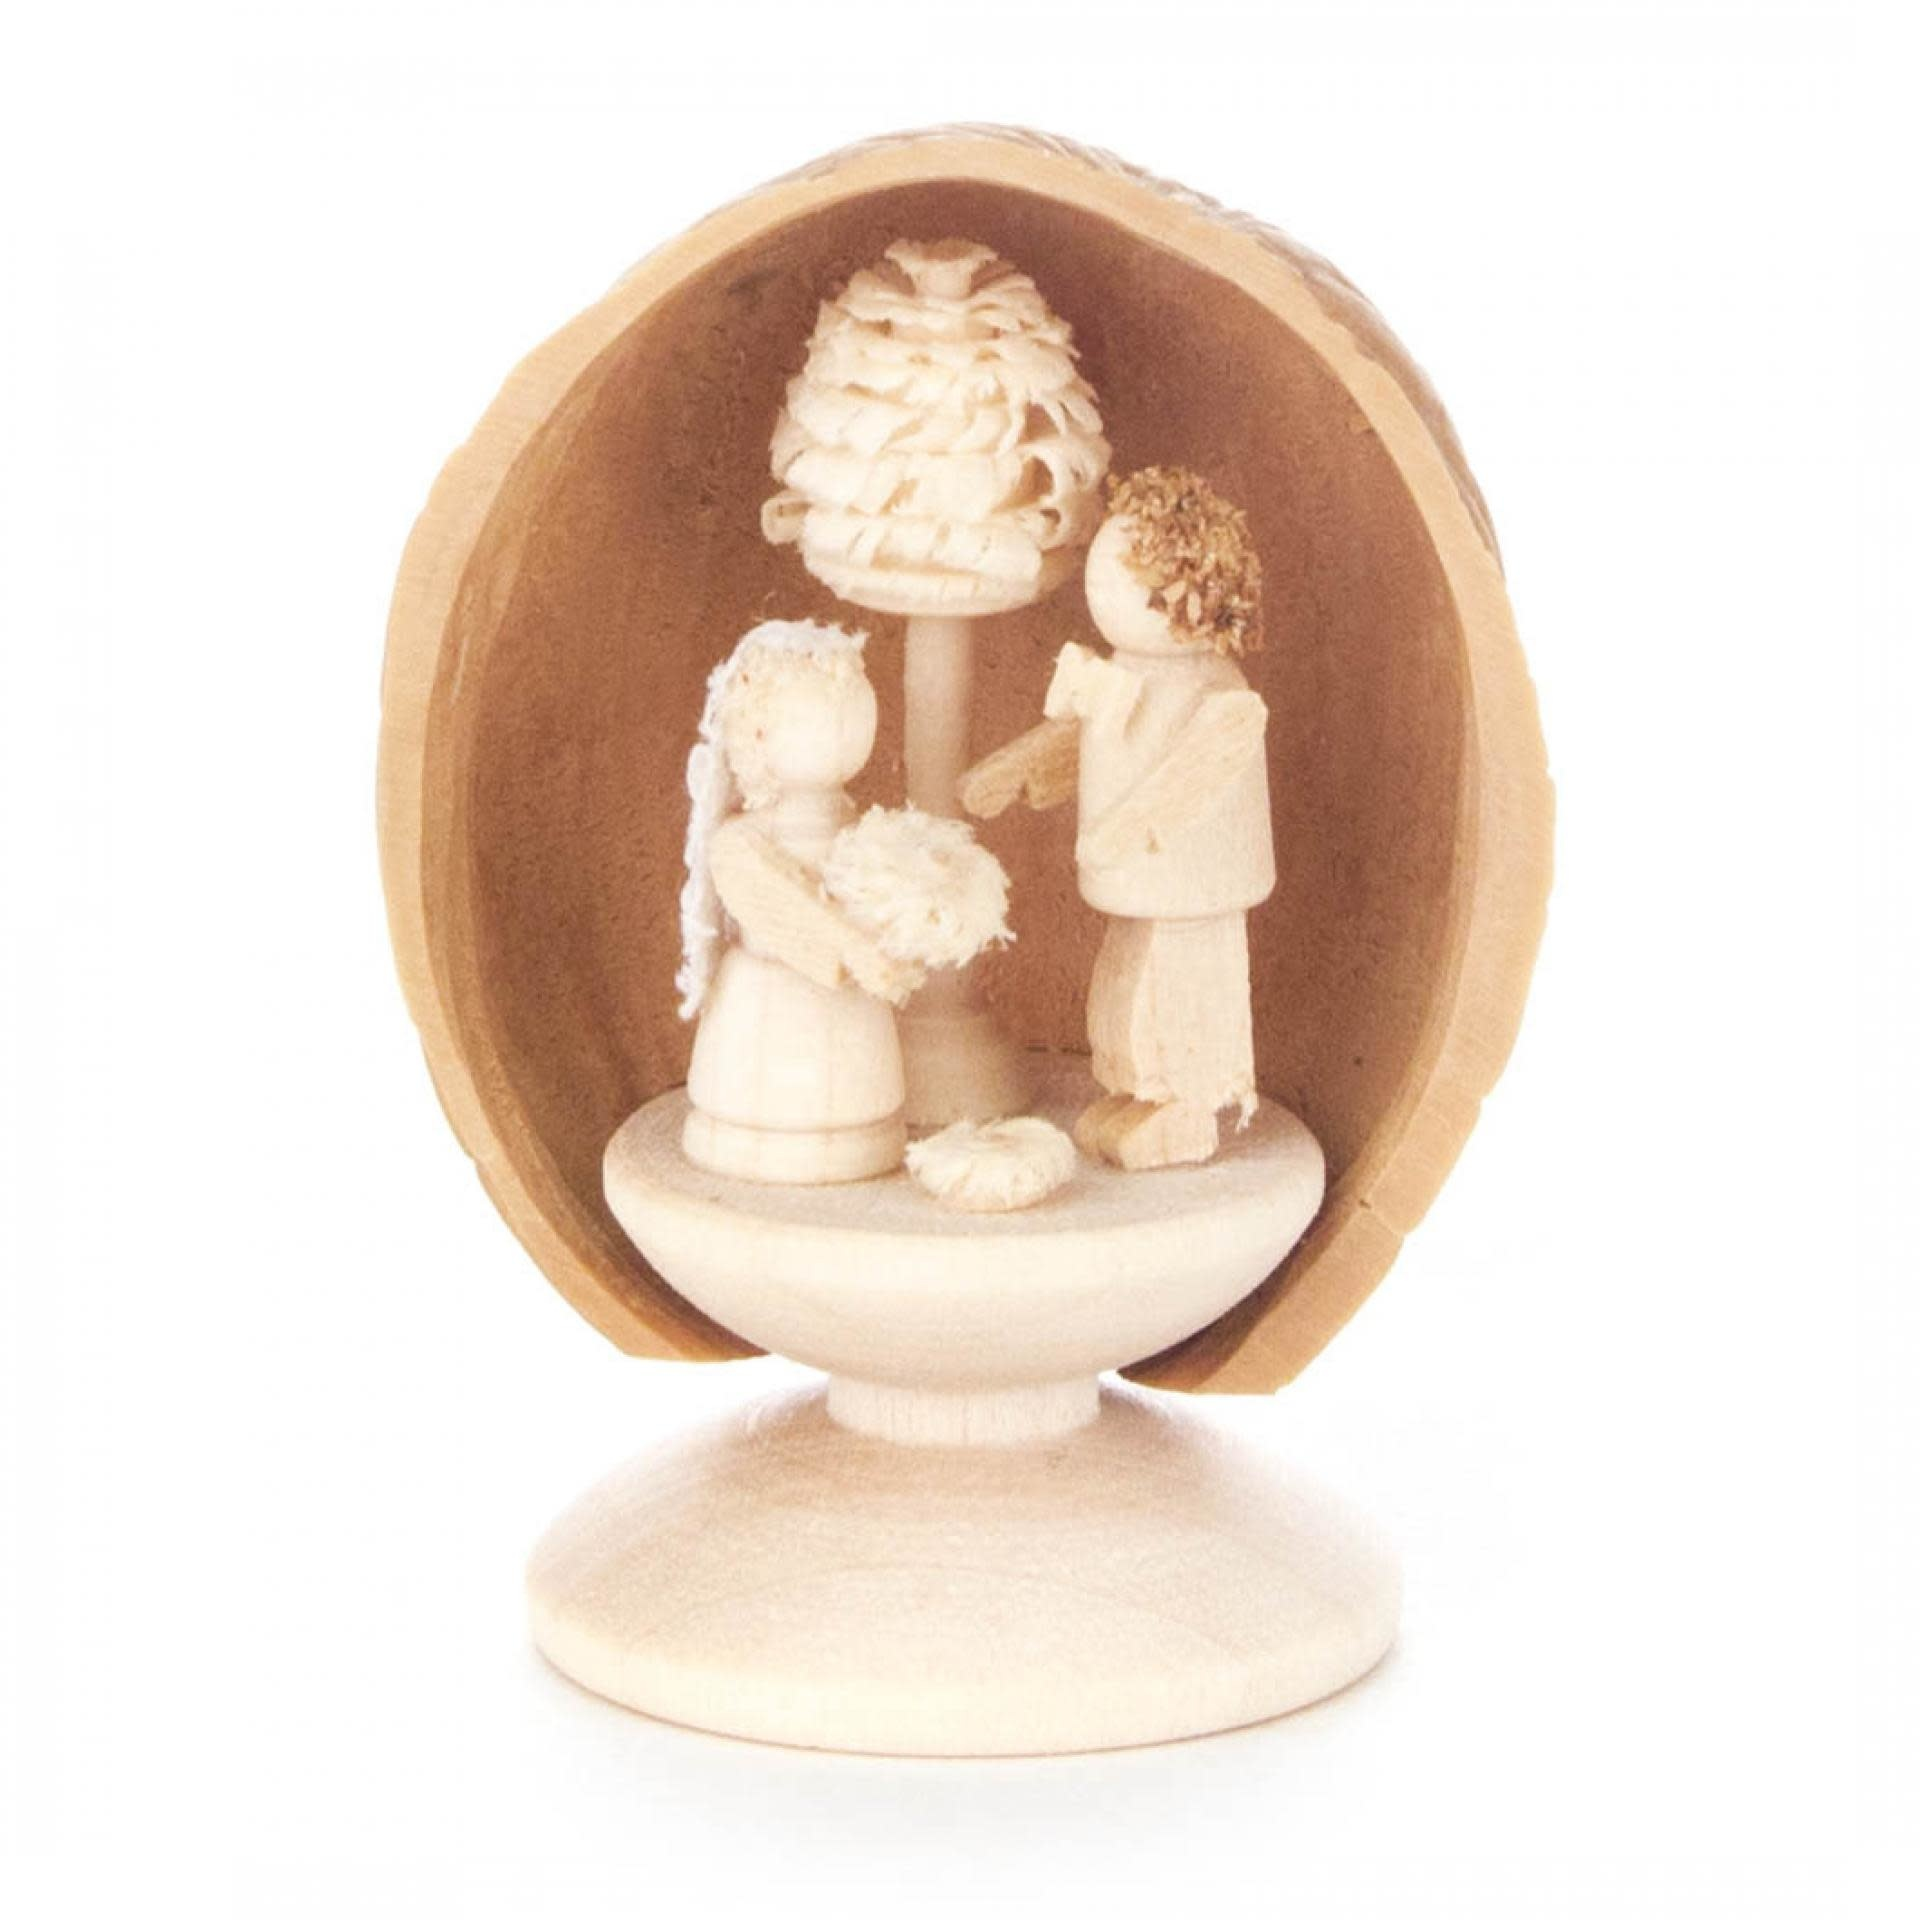 199/480S Walnut shell with bridal couple